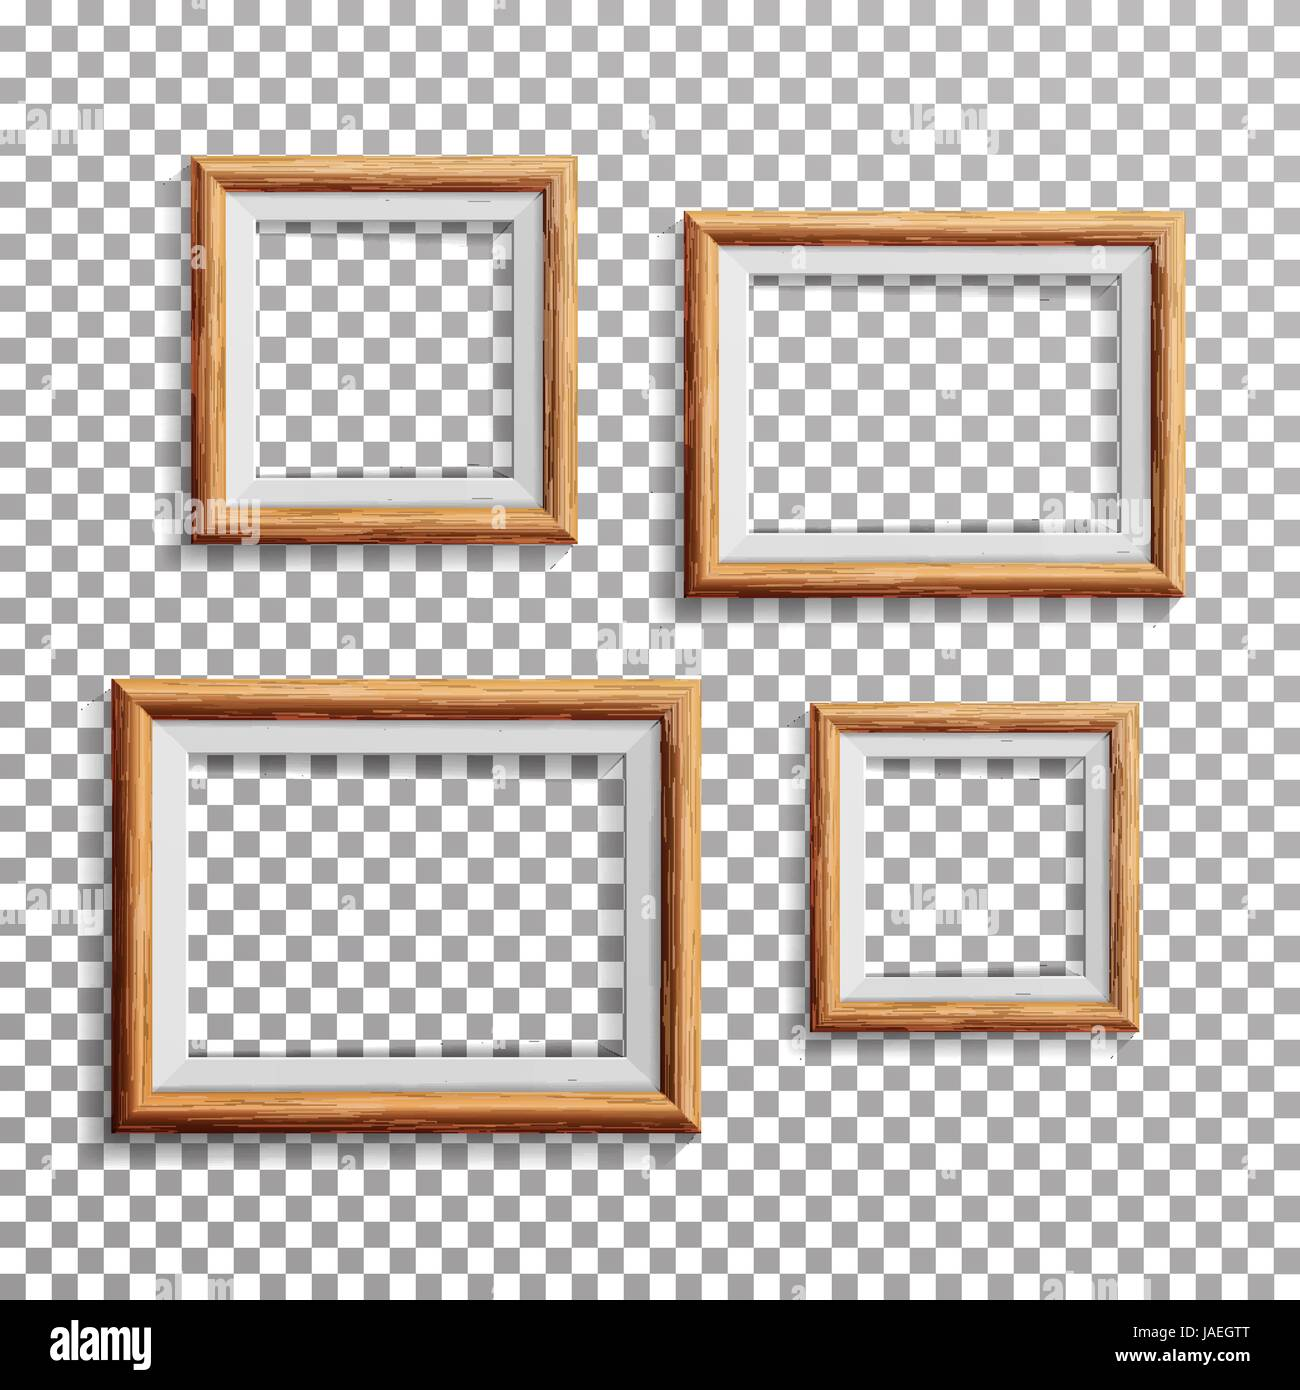 Realistic Photo Frame Vector  Set Square, A3, A4 Sizes Light